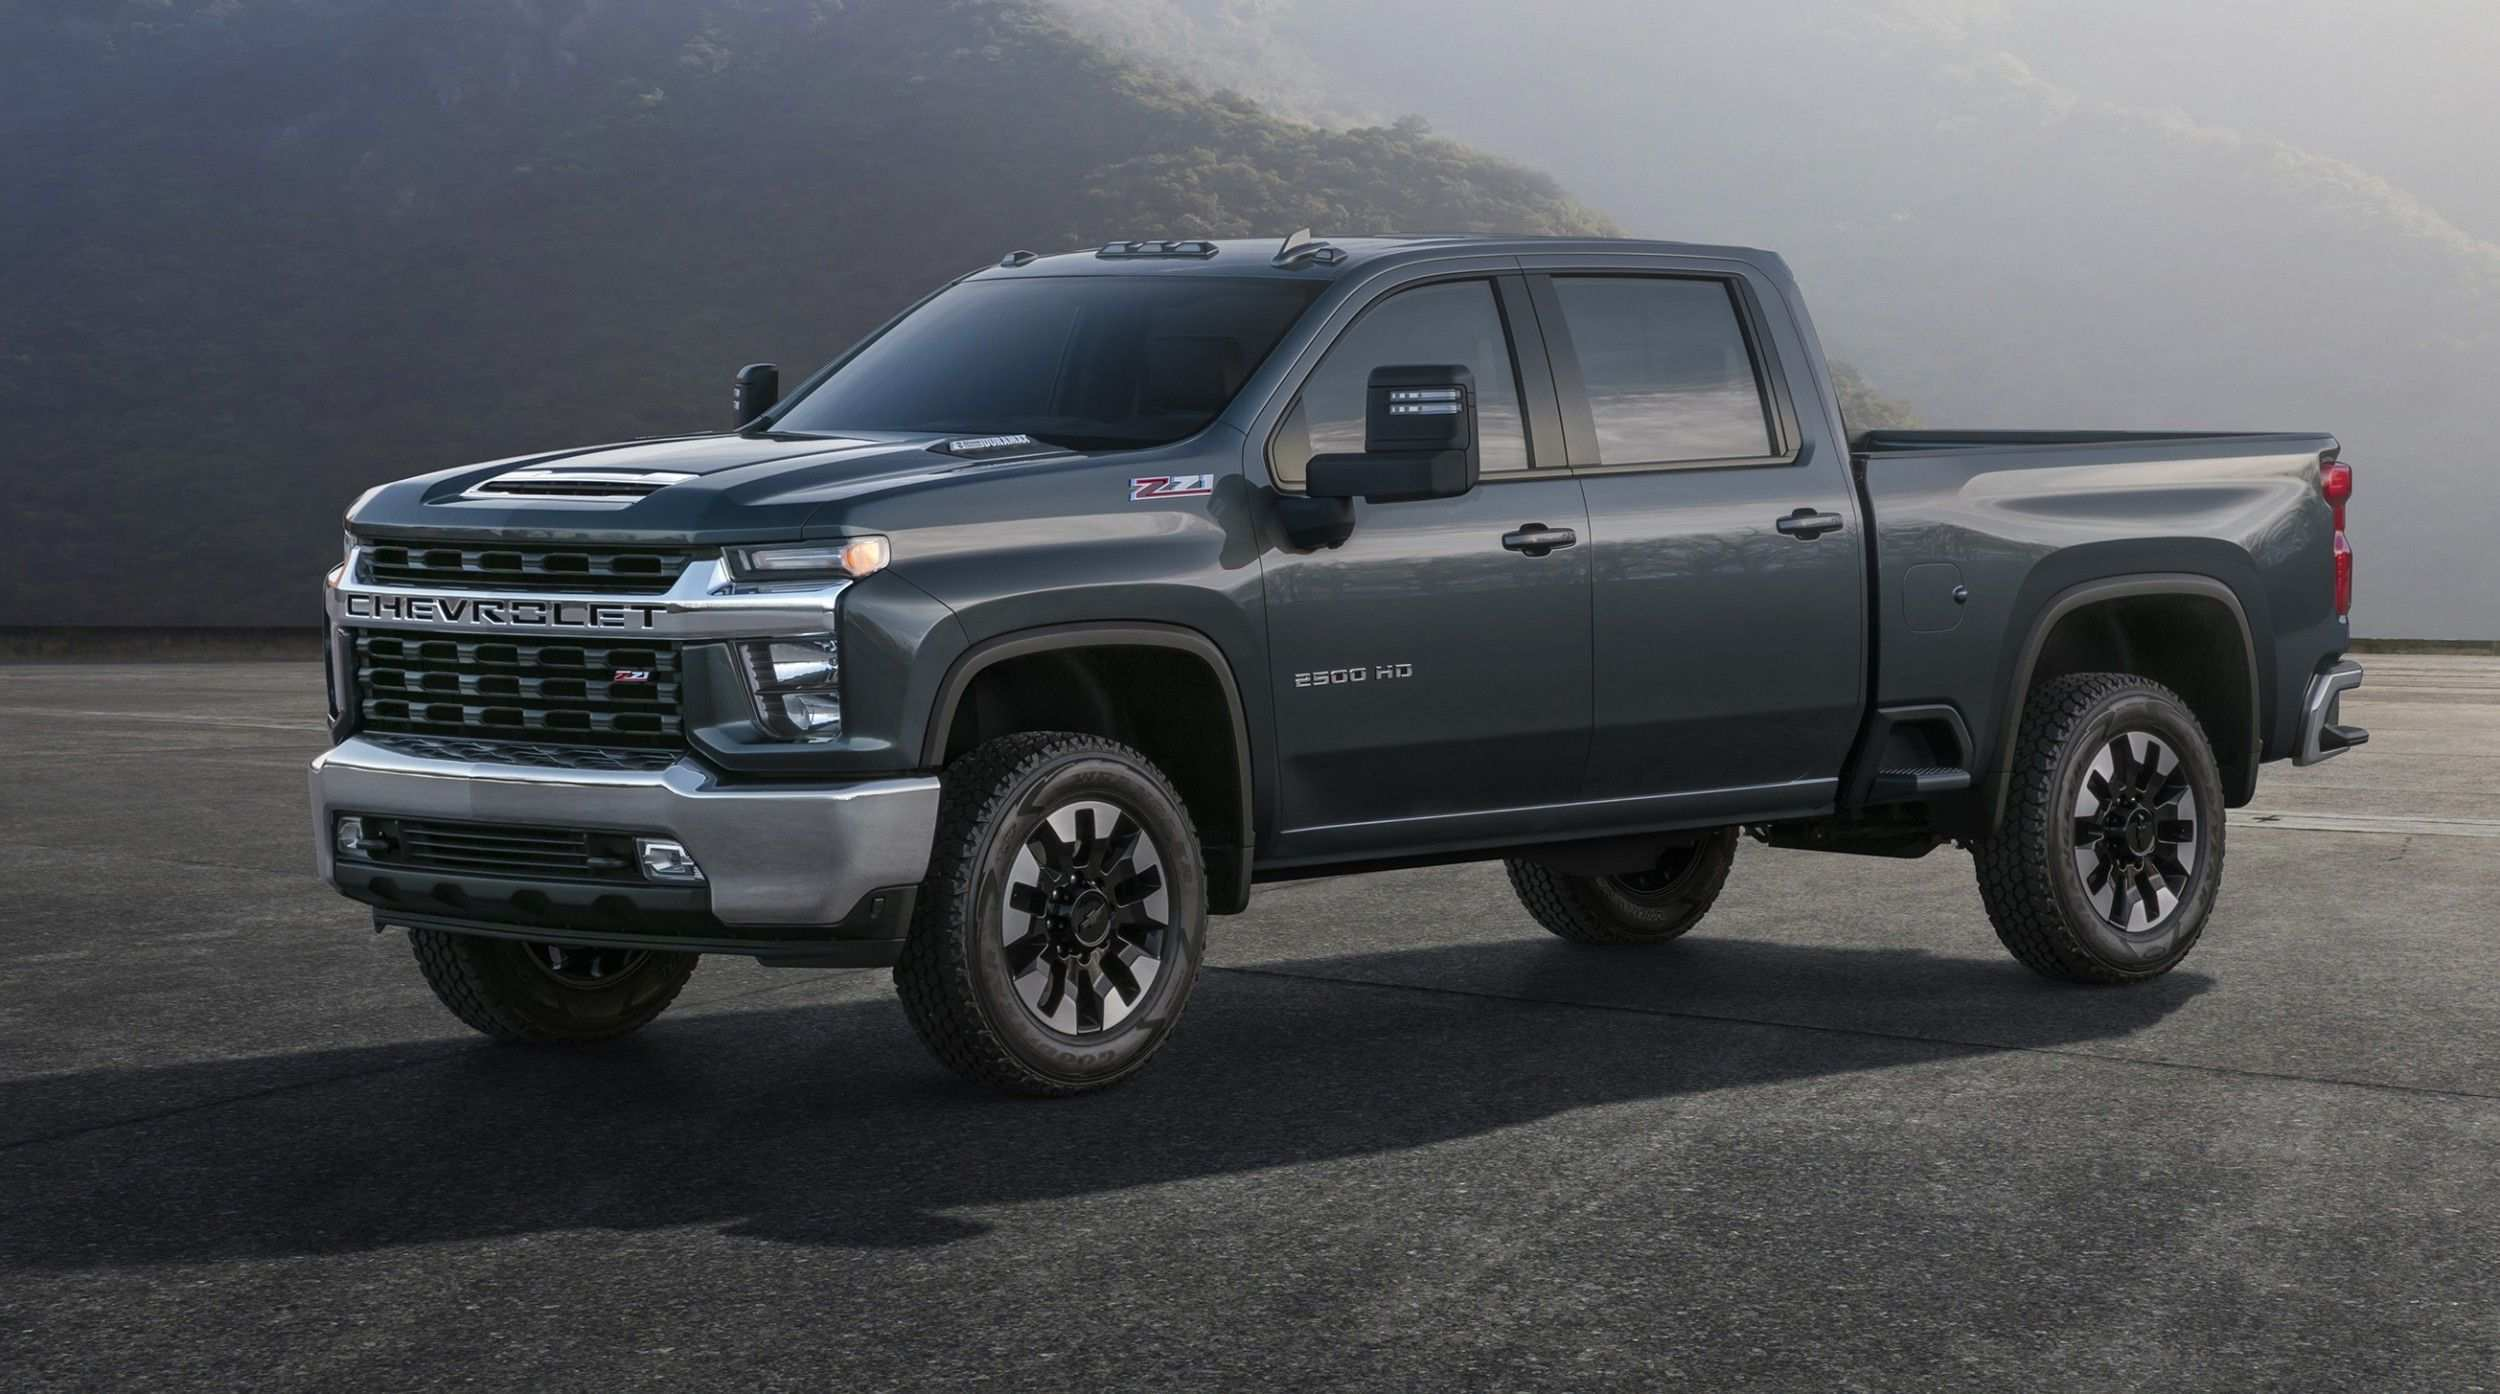 98 Best Chevrolet Silverado Ss 2020 Price And Review